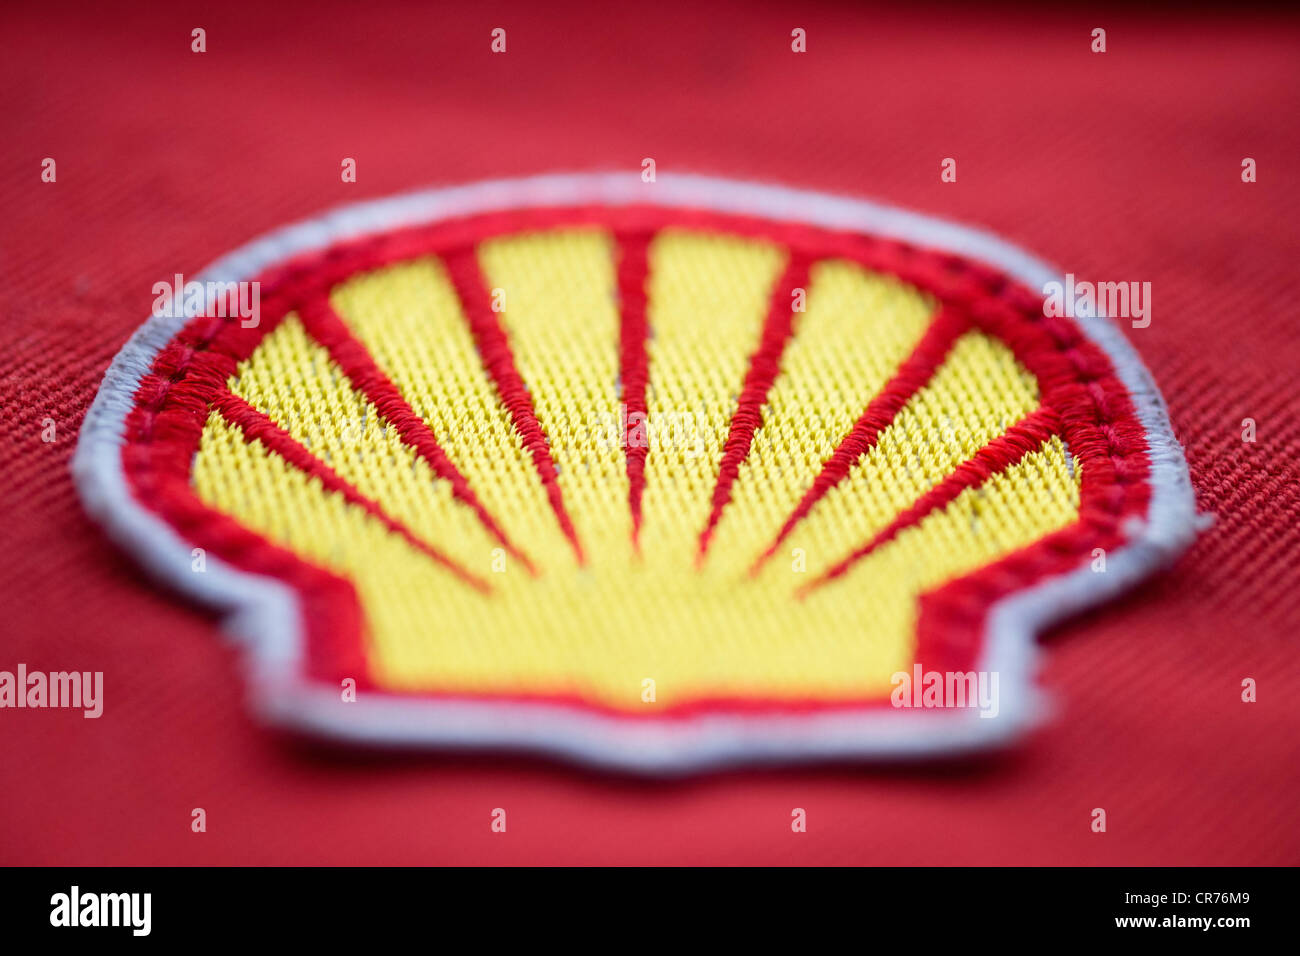 Detail of cloth logo patch on safety overalls of worker for Royal Dutch Shell oil company. - Stock Image